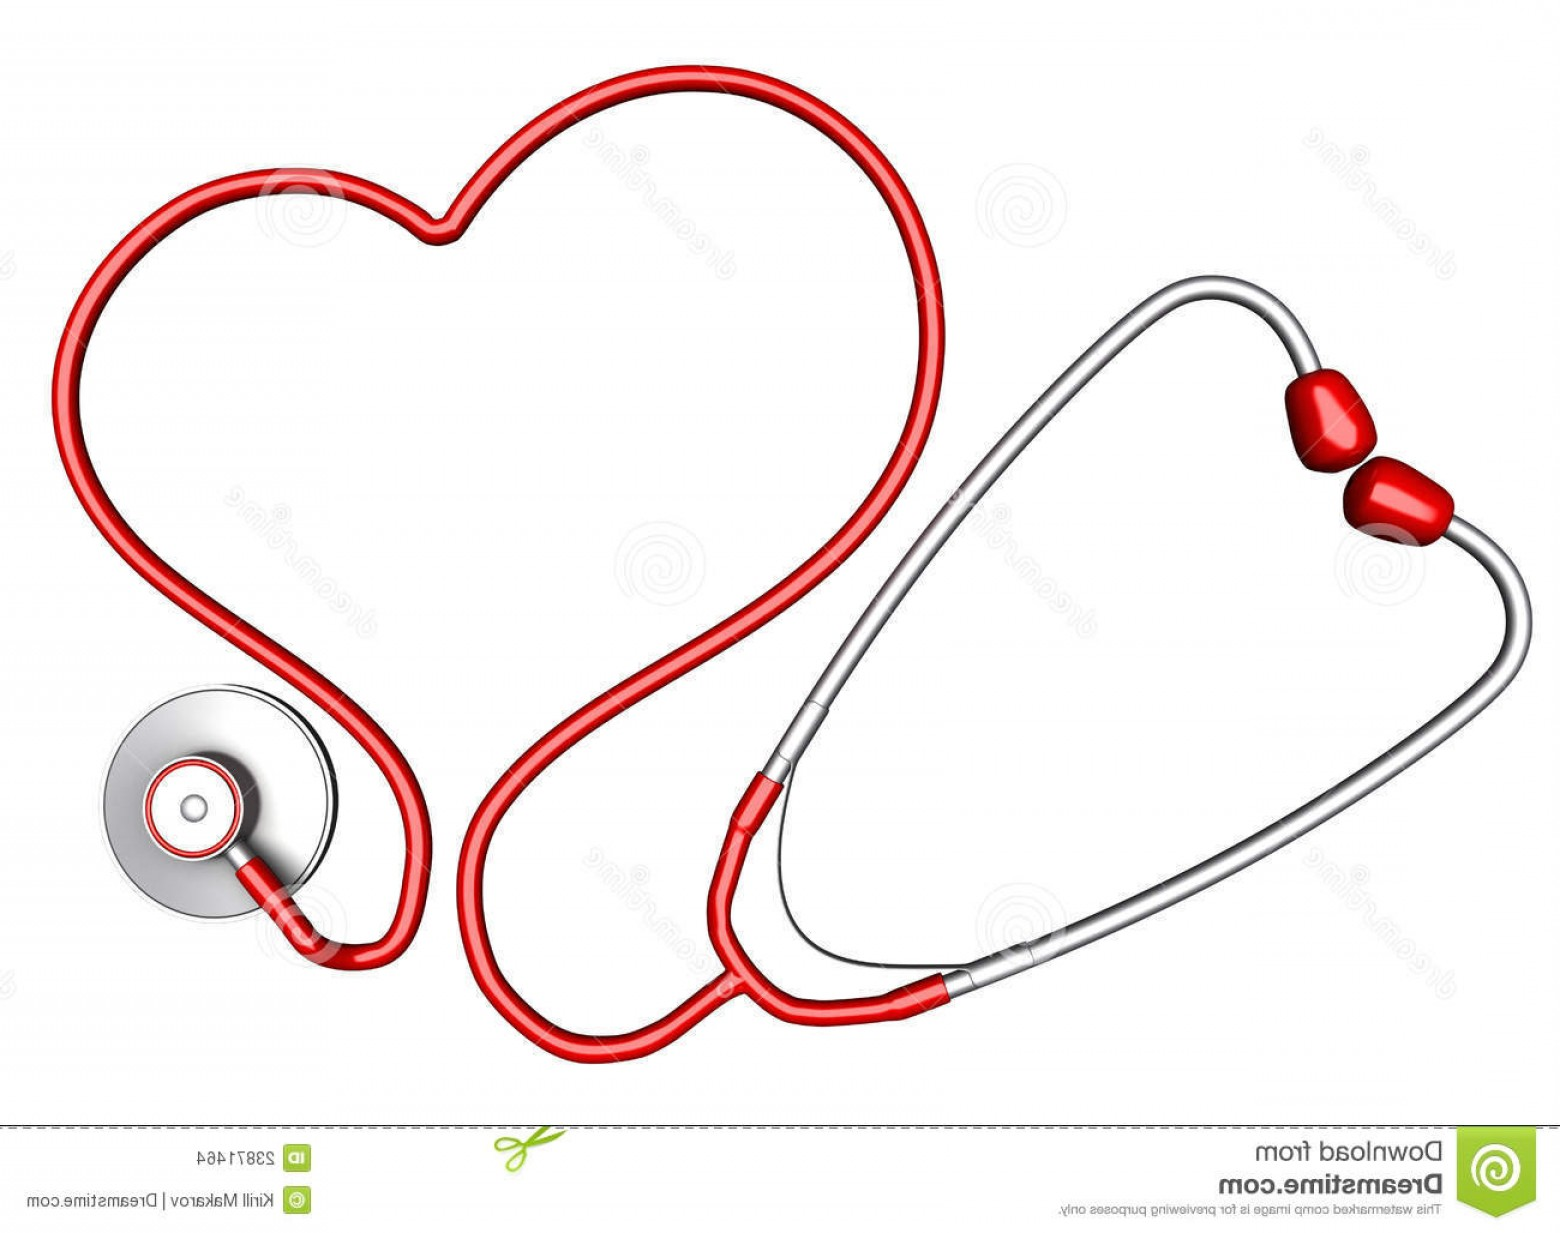 Stethoscope With Heart Vector Art: Stock Images Heart Shaped Stethoscope Image